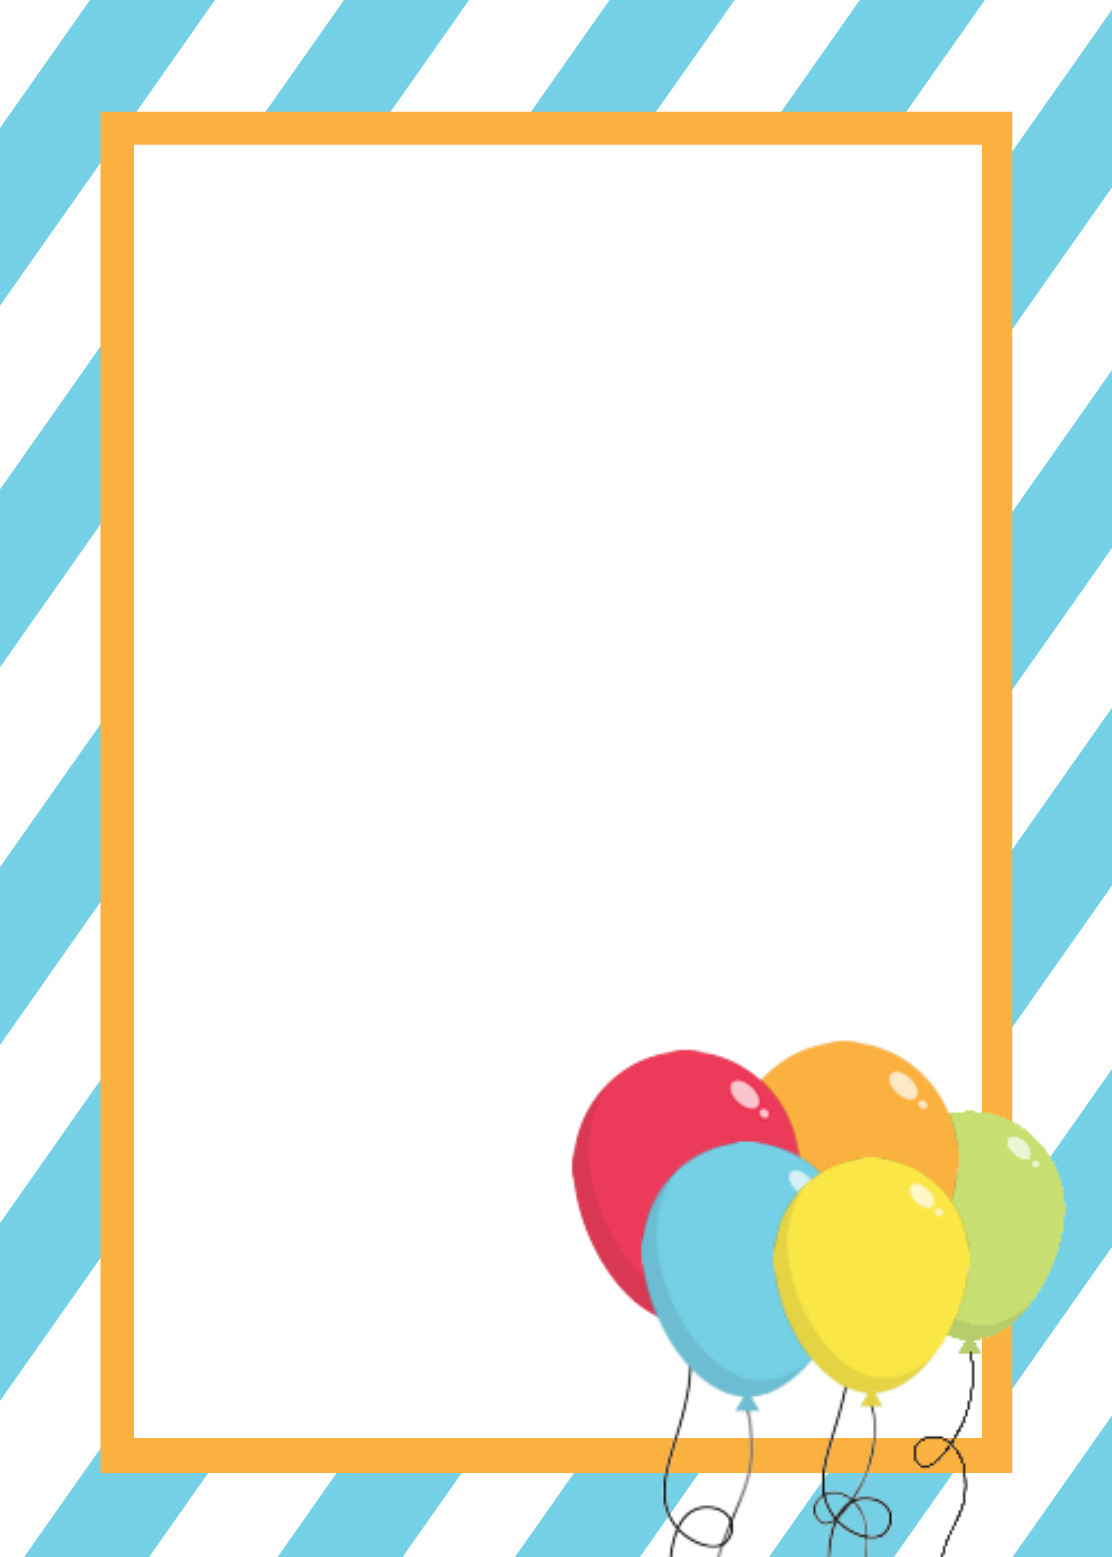 Best ideas about Birthday Party Invitation Template . Save or Pin Free Printable Birthday Invitation Templates Now.